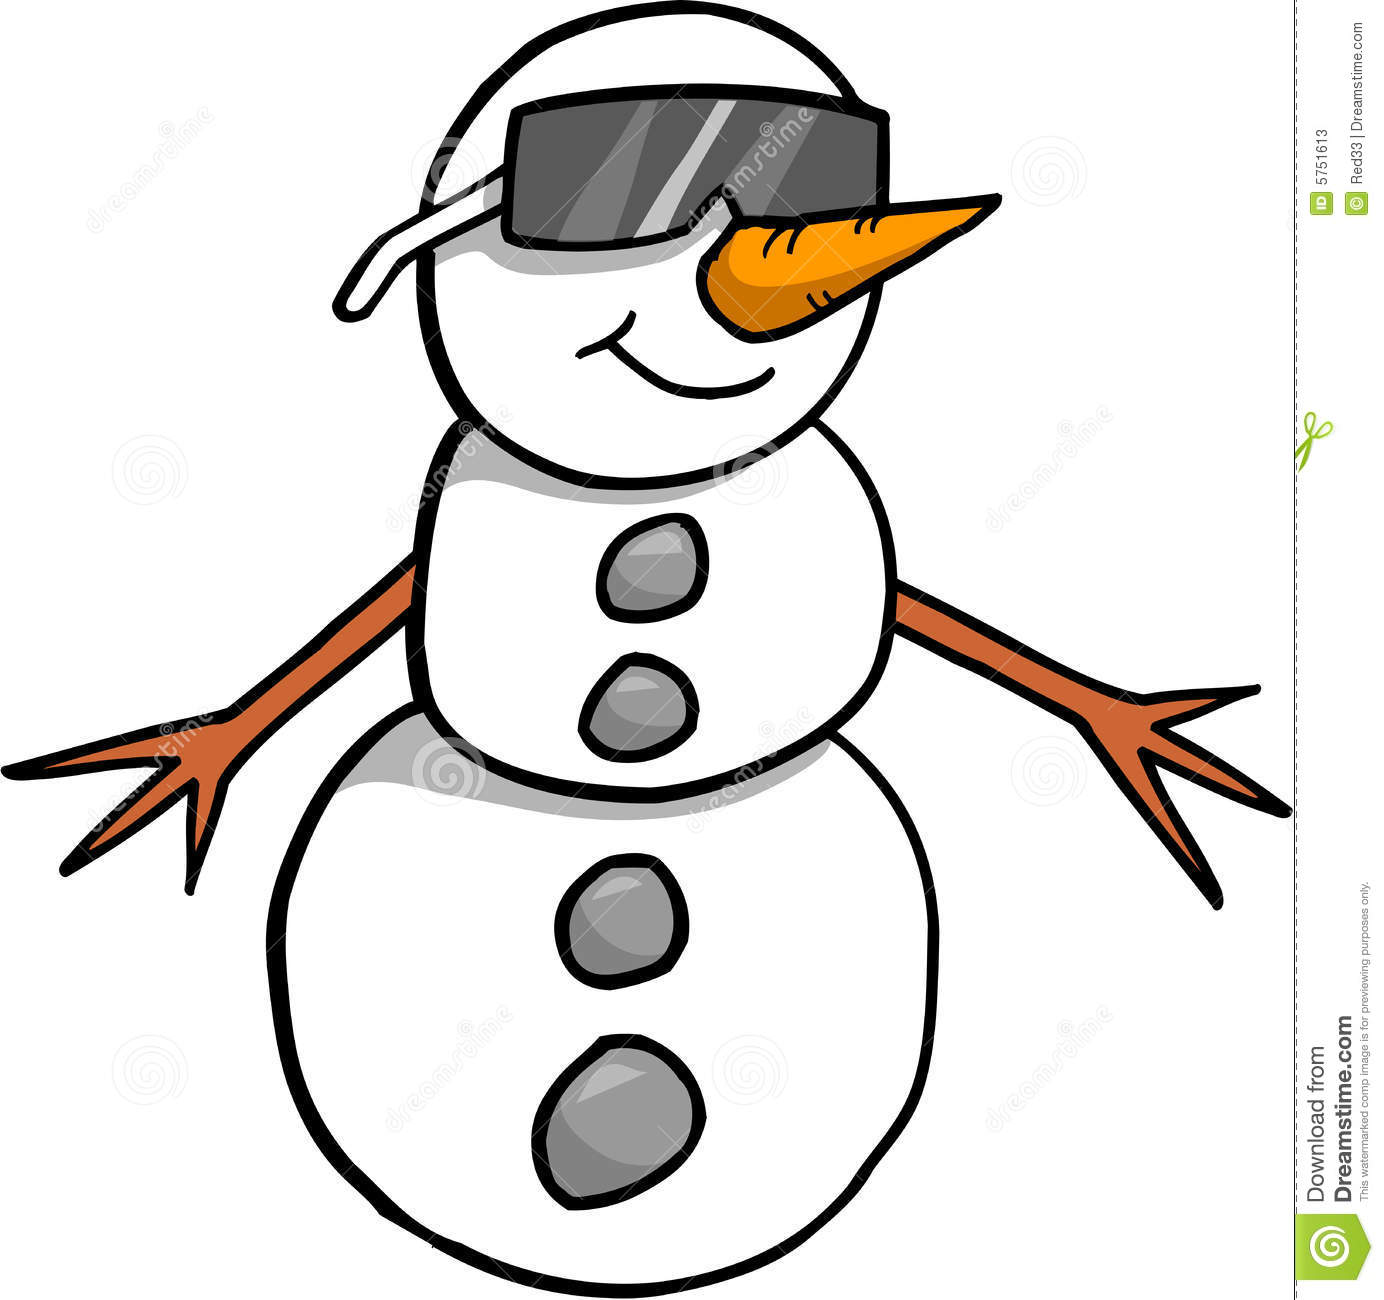 snowman vector illustration stock vector illustration of snow rh dreamstime com vector snowmobiles for sale in wisconsin vector snowflake patterns